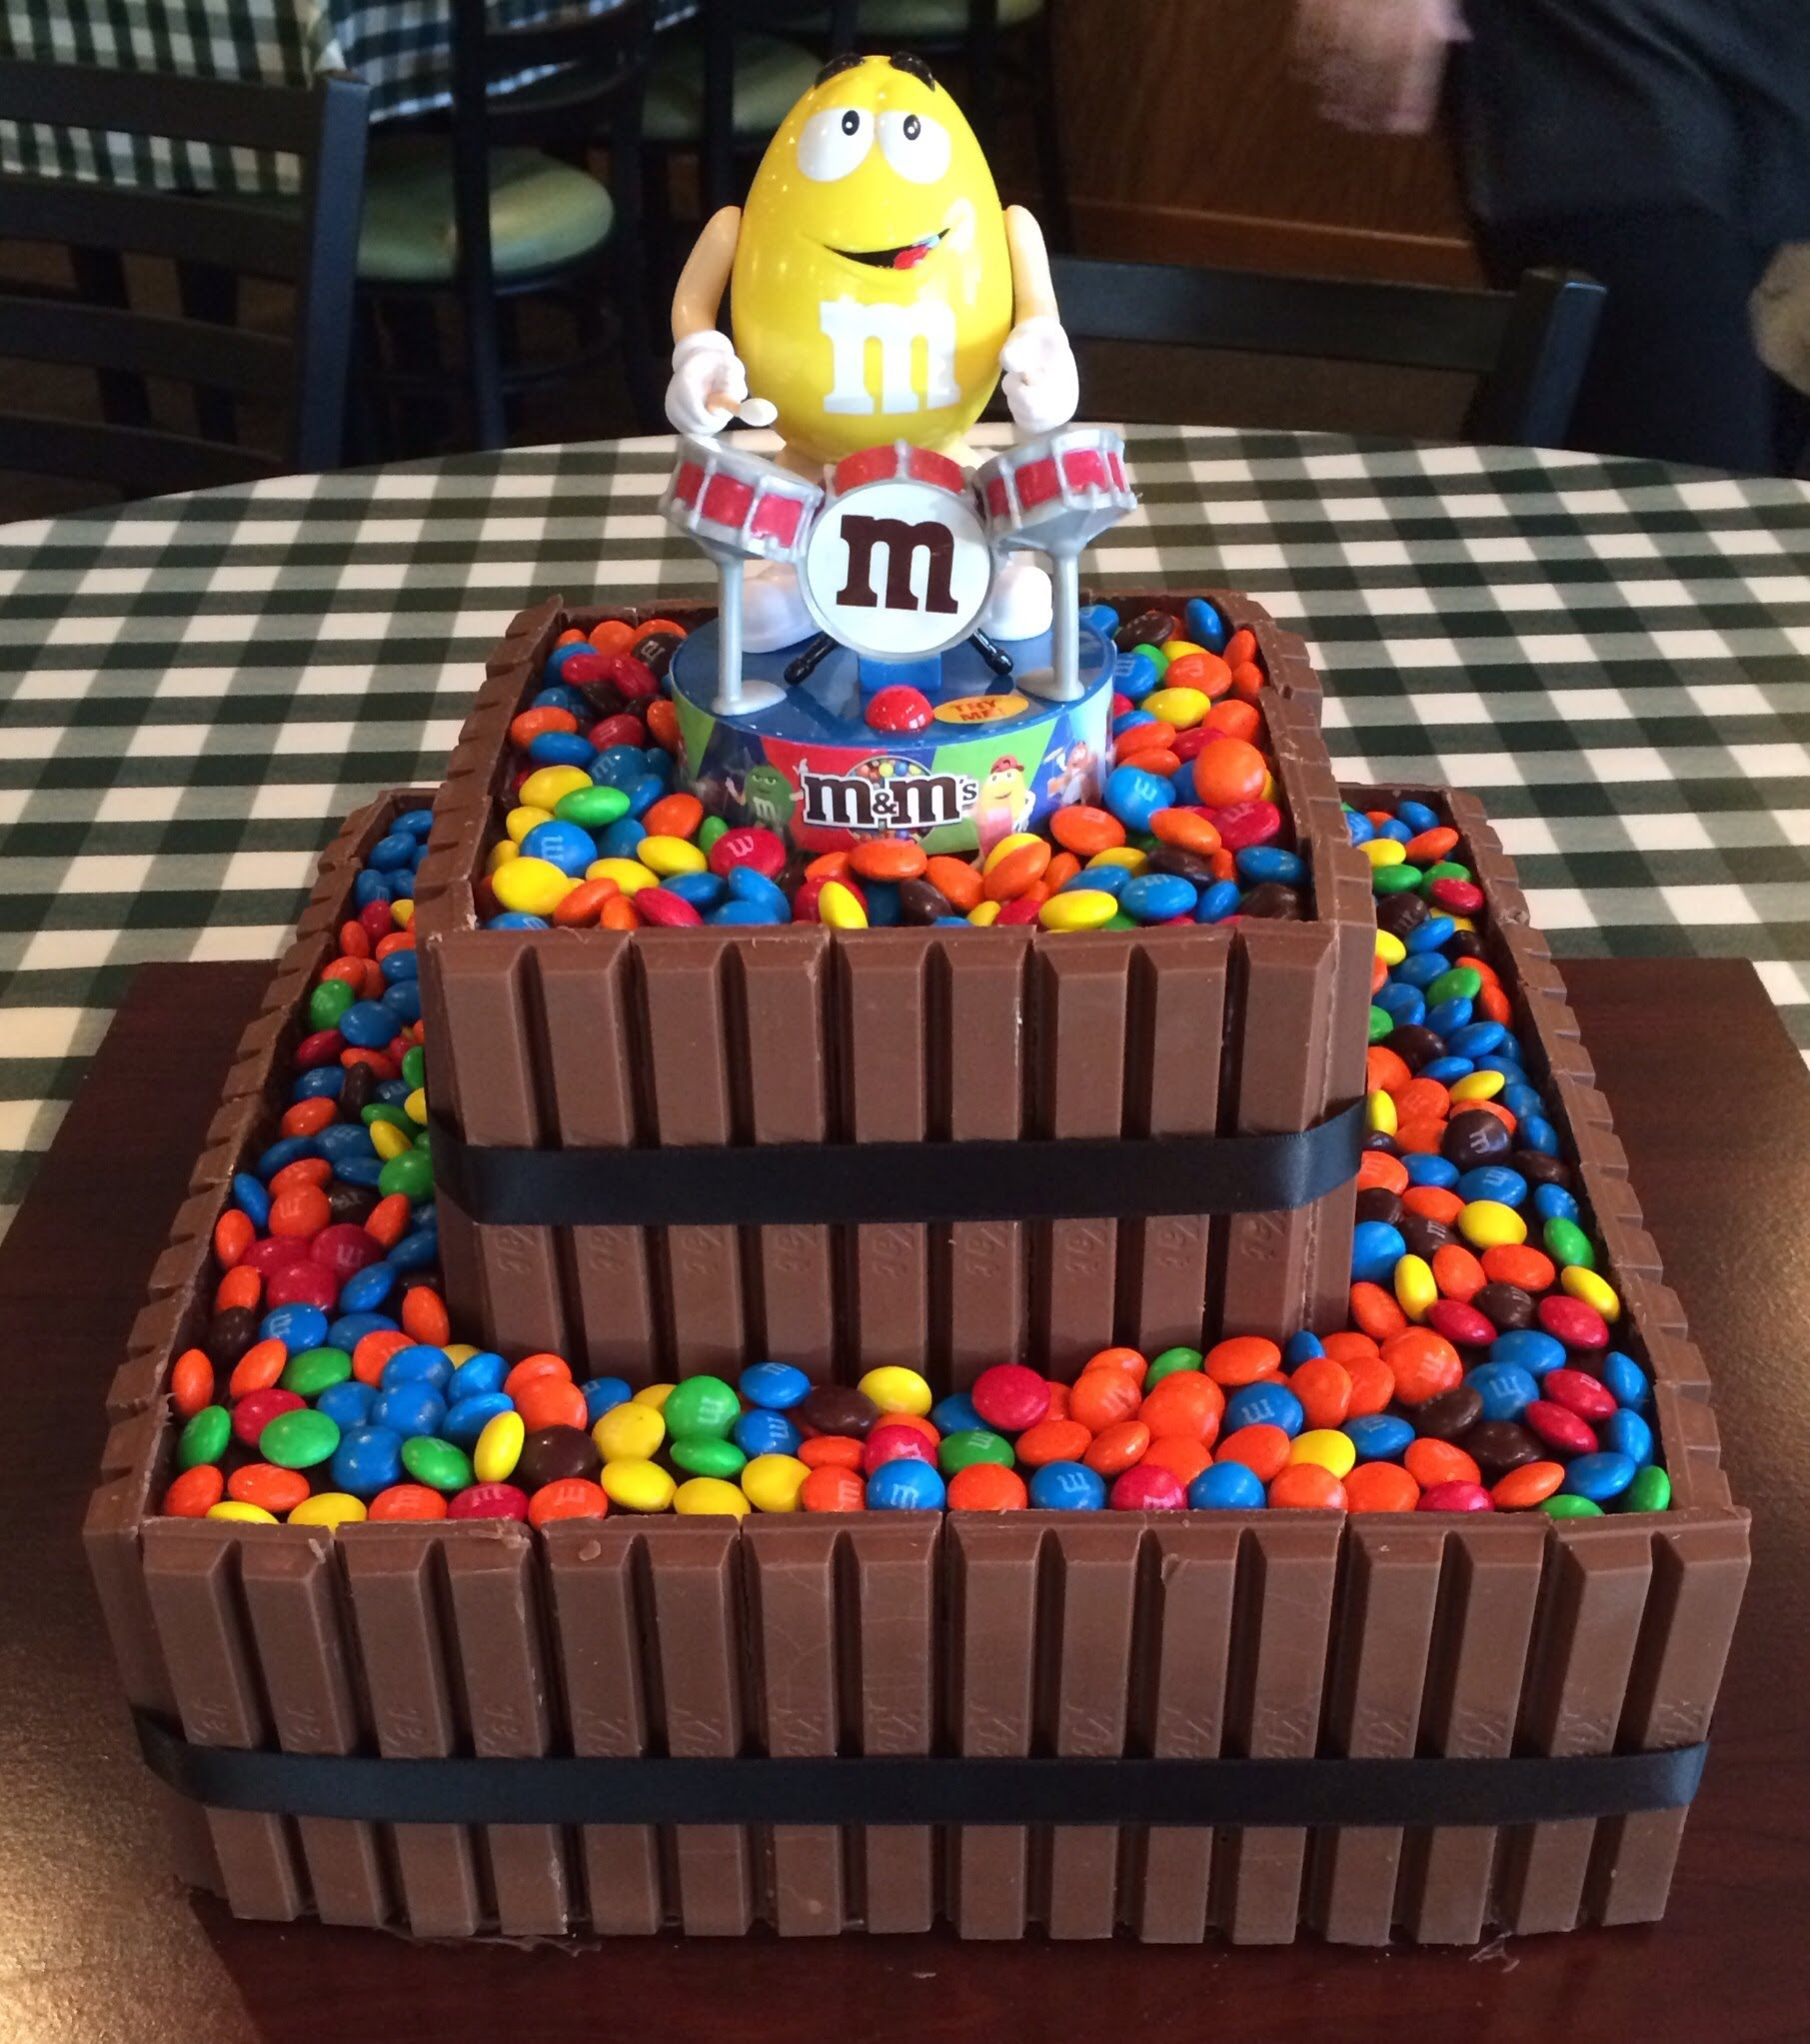 Admirable 11 Mm Happy Birthday Cakes Photo Easy Mm Cake M And M Cake And Funny Birthday Cards Online Bapapcheapnameinfo